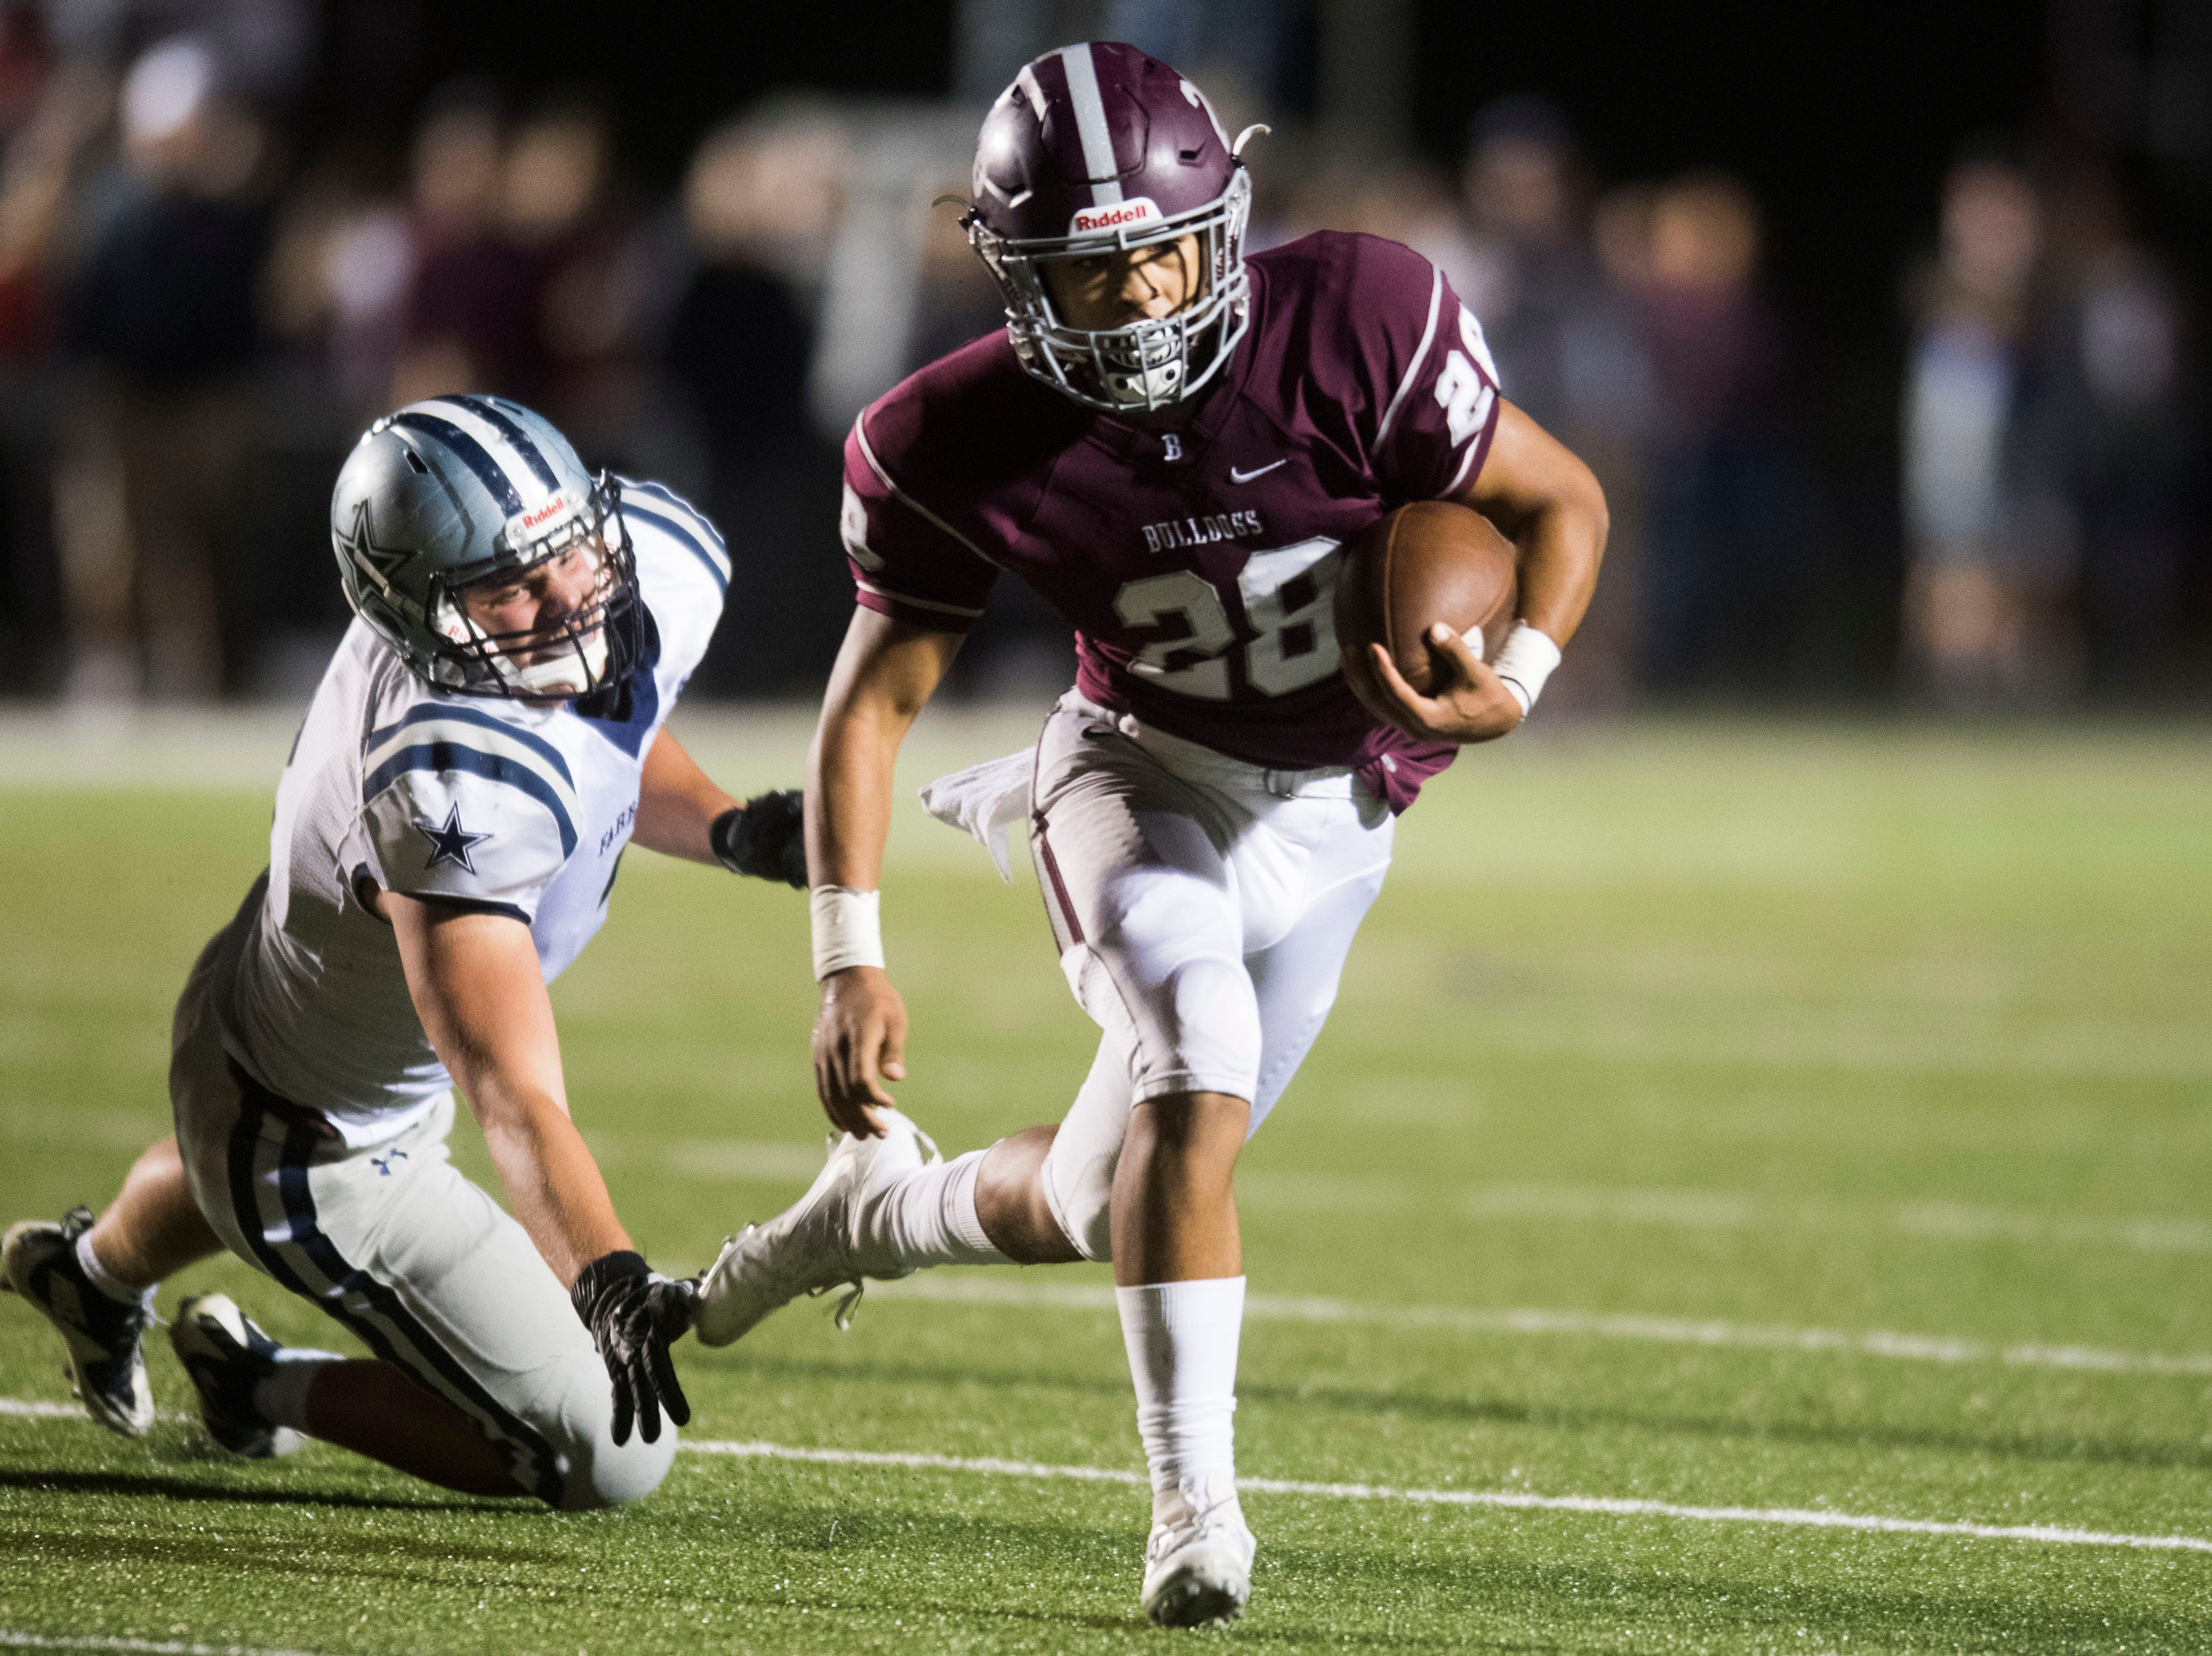 Bearden's Makai Williams (28) runs the ball during a game between Bearden and Farragut at Bearden Thursday, Oct. 11, 2018. Bearden took down Farragut 17-13.